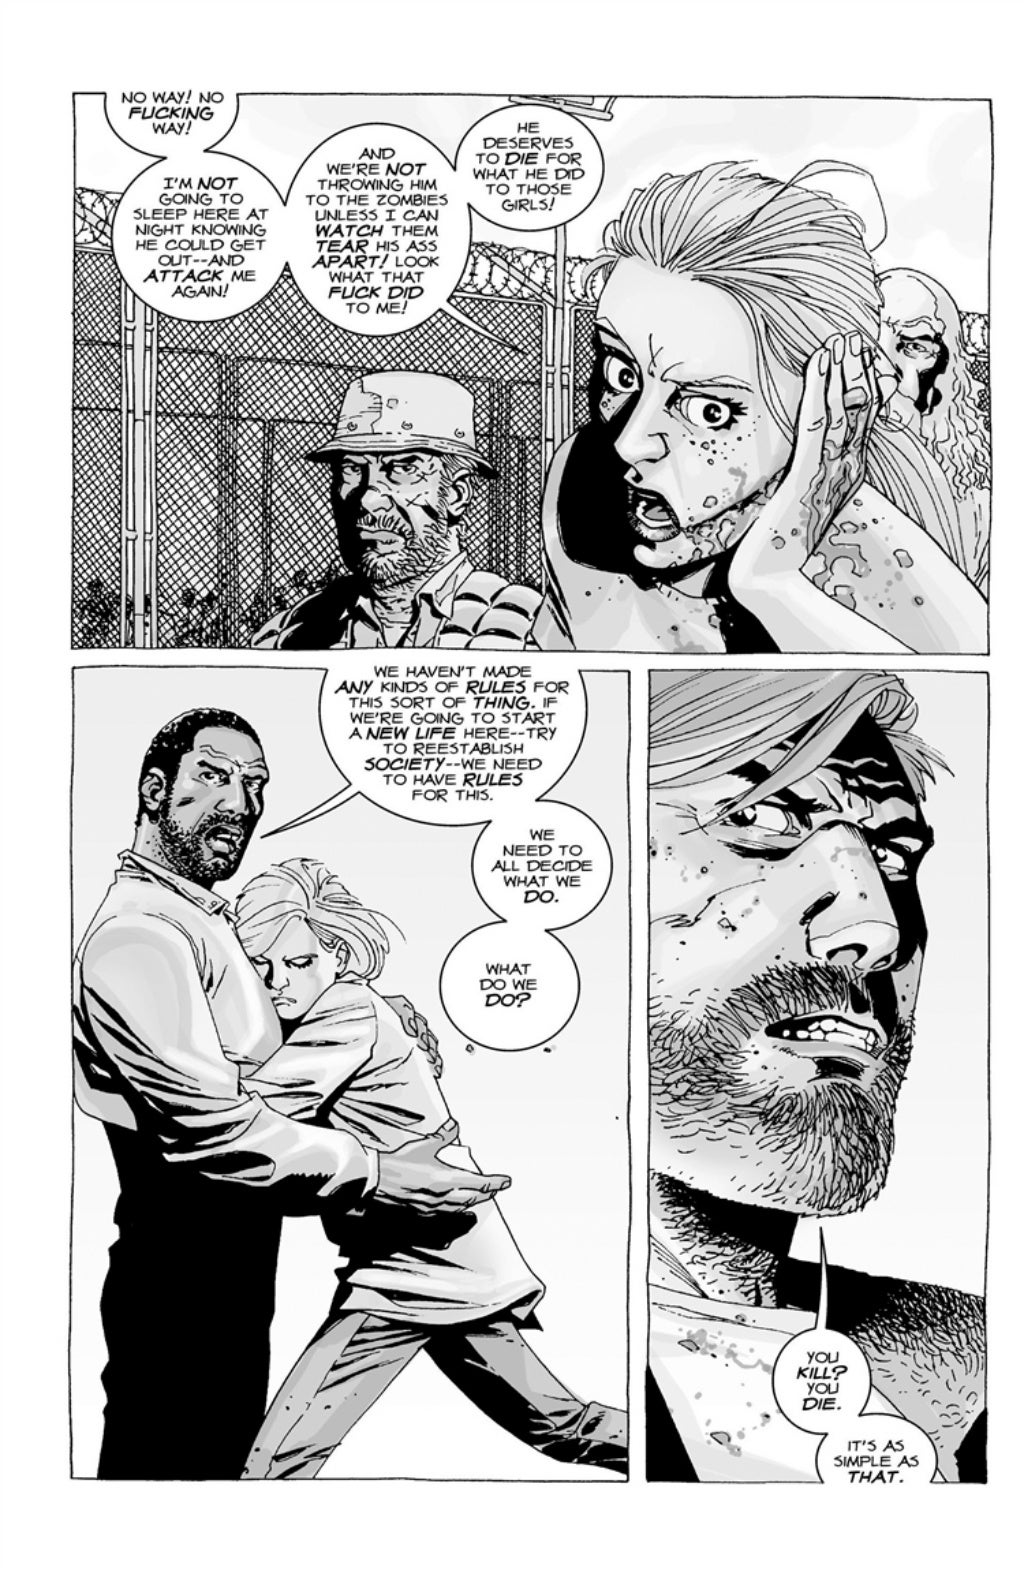 The Walking Dead volume 3 page 110